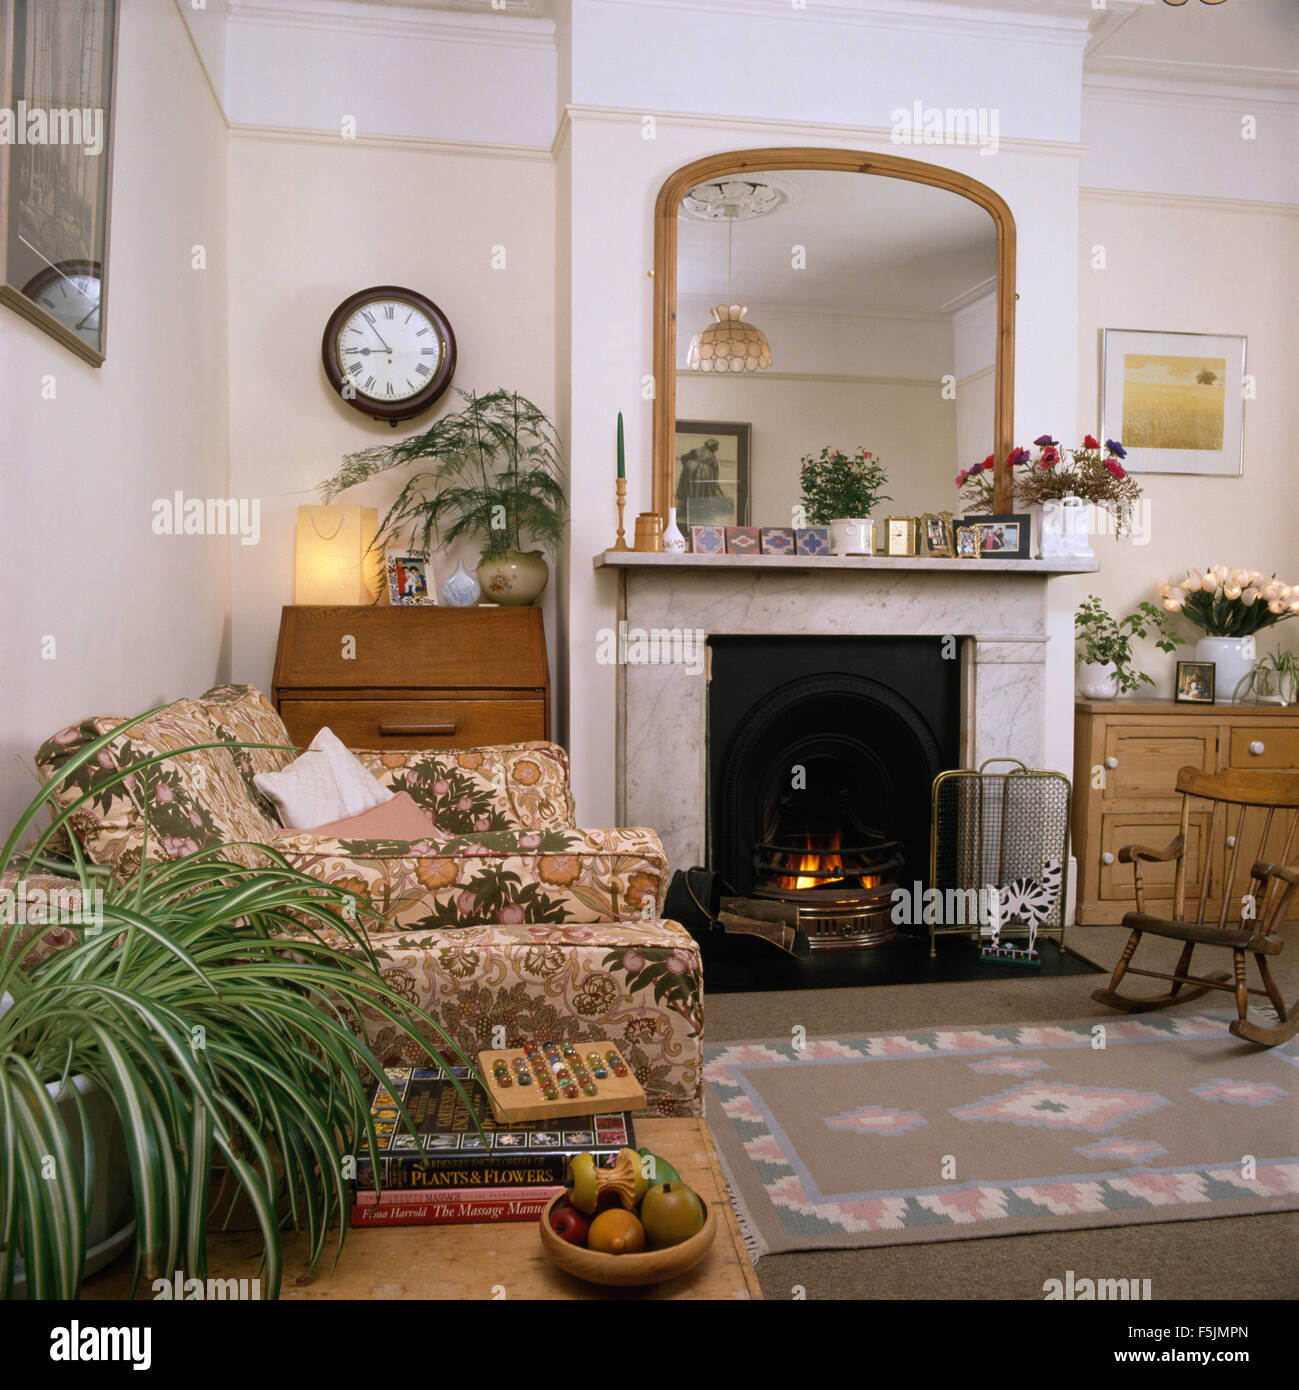 Mirror Above Marble Fireplace With Lighted Fire In Nineties